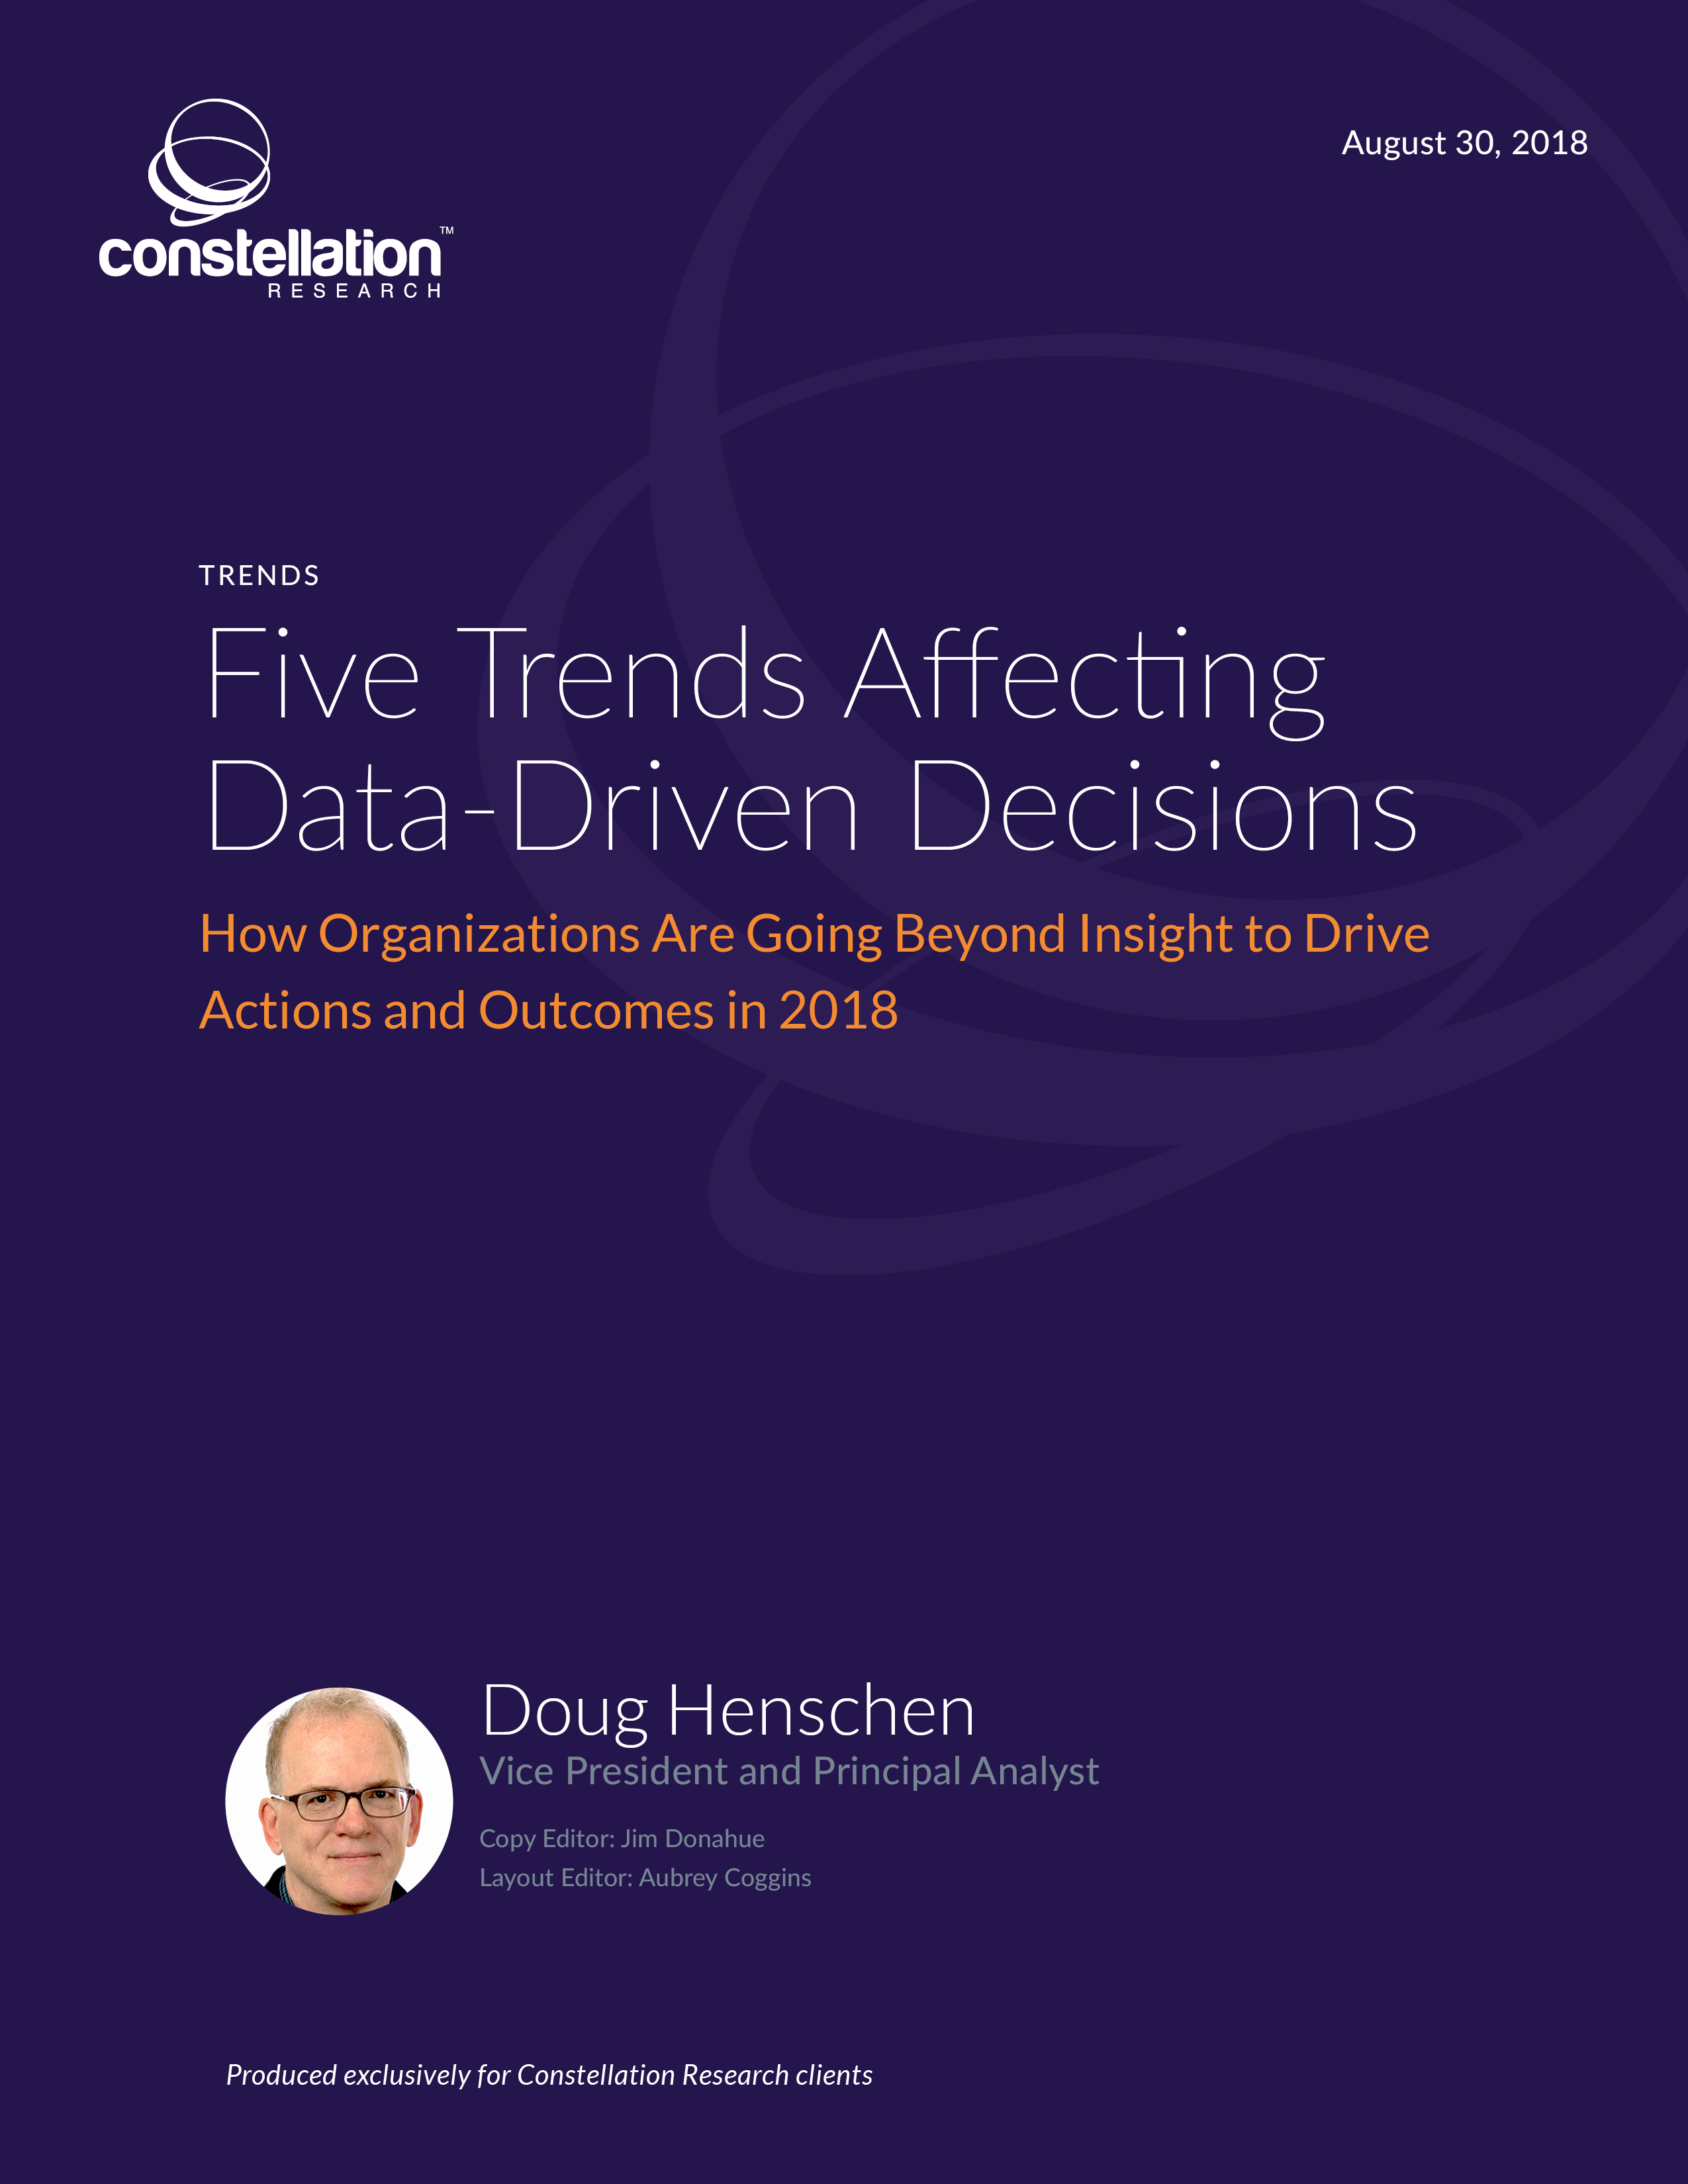 Five Trends Affecting Data-Driven Decisions